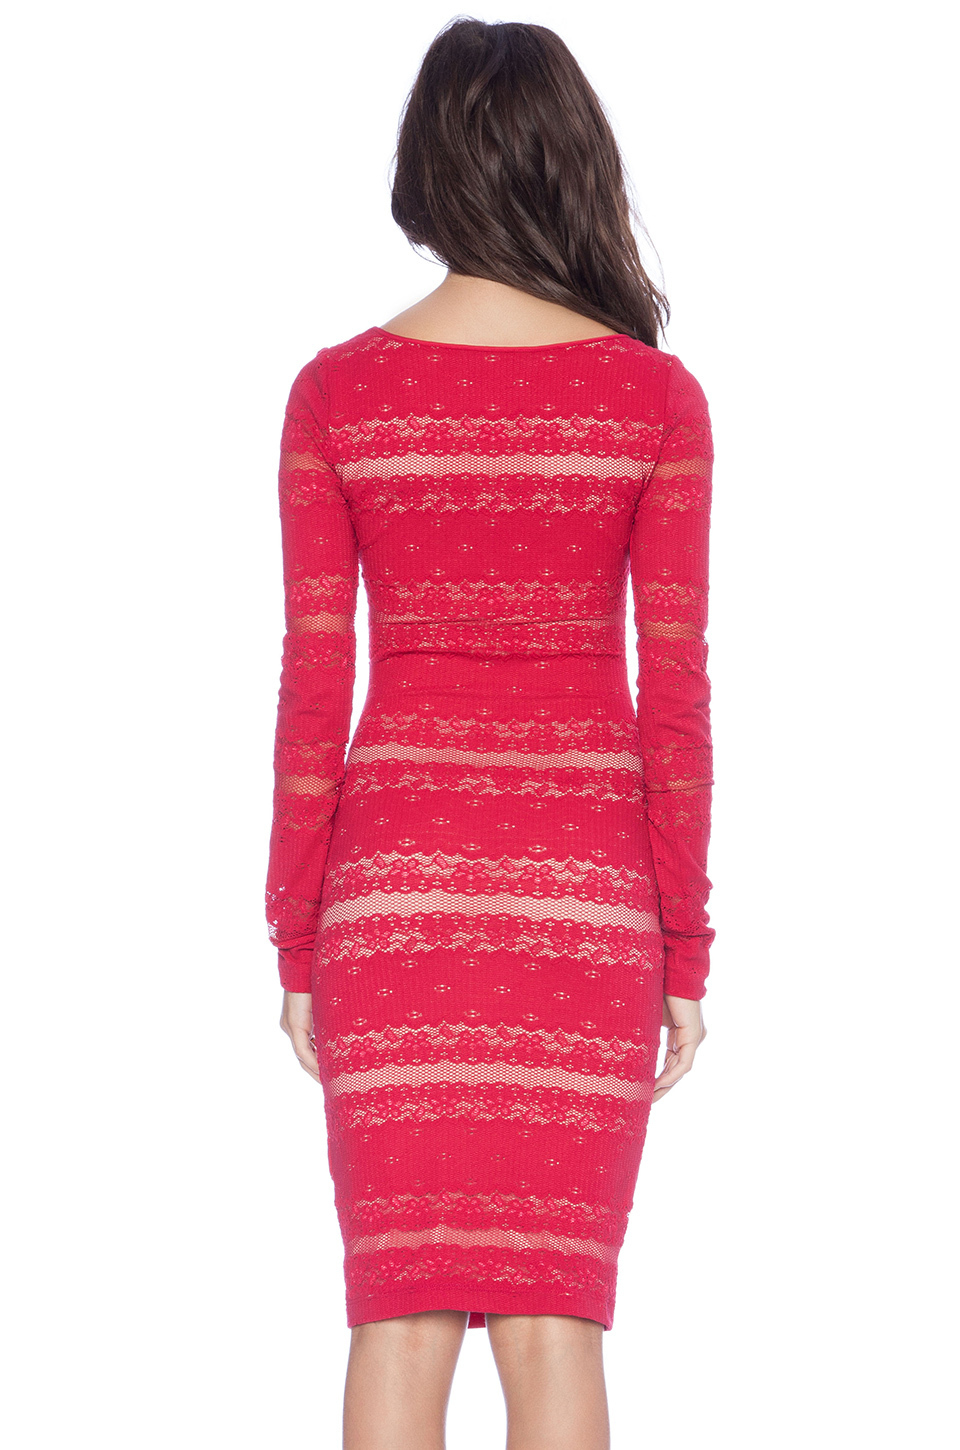 Red Cocktail Dress Sears - Plus Size Dresses